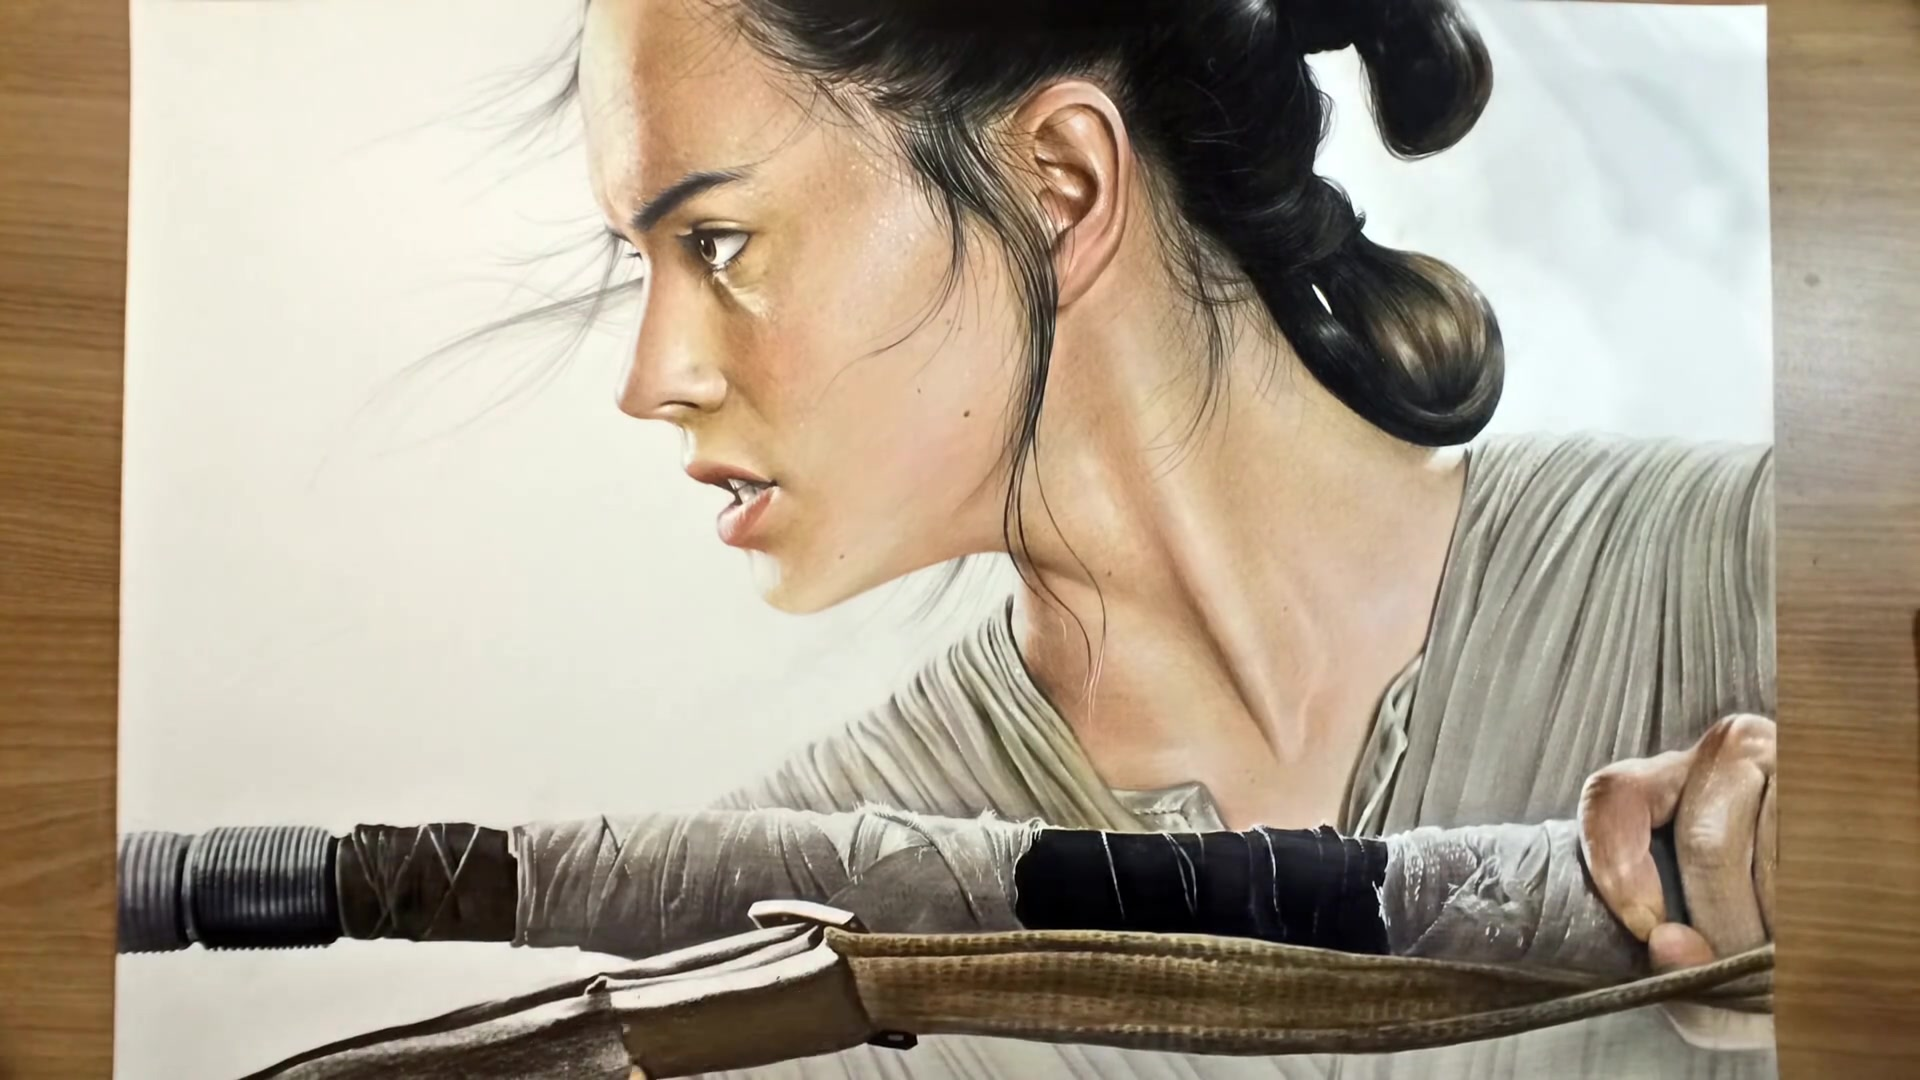 Drawing Hands Episode 91: Speed Drawing Rey From 'Star Wars'